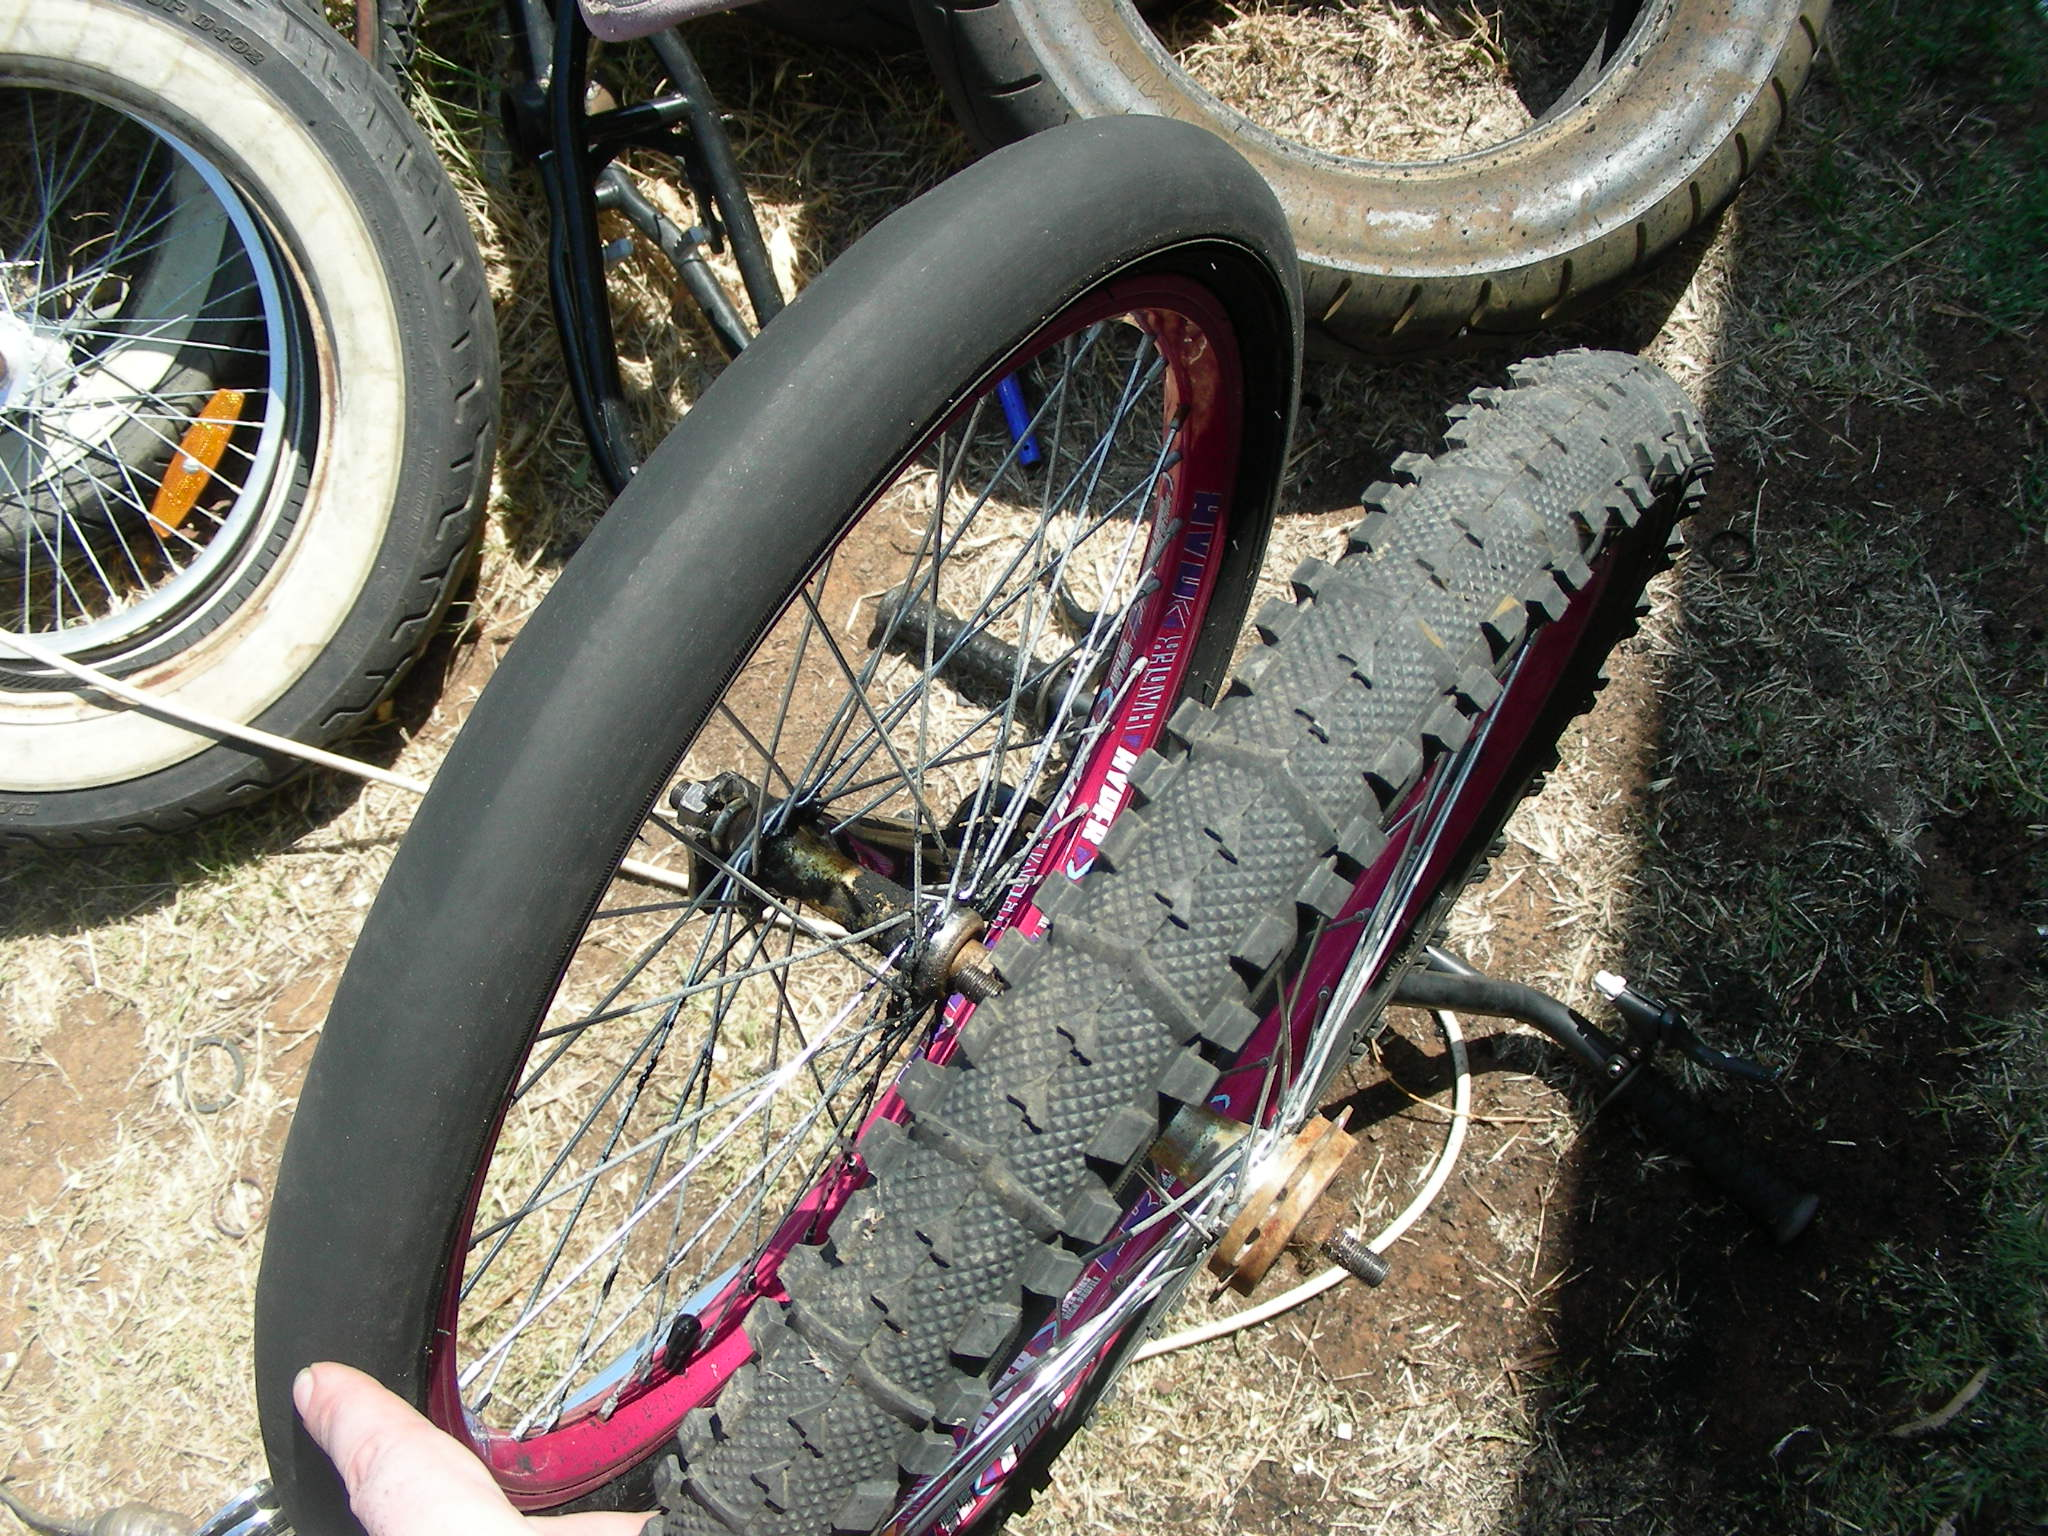 Homemade bicycle slick tires.